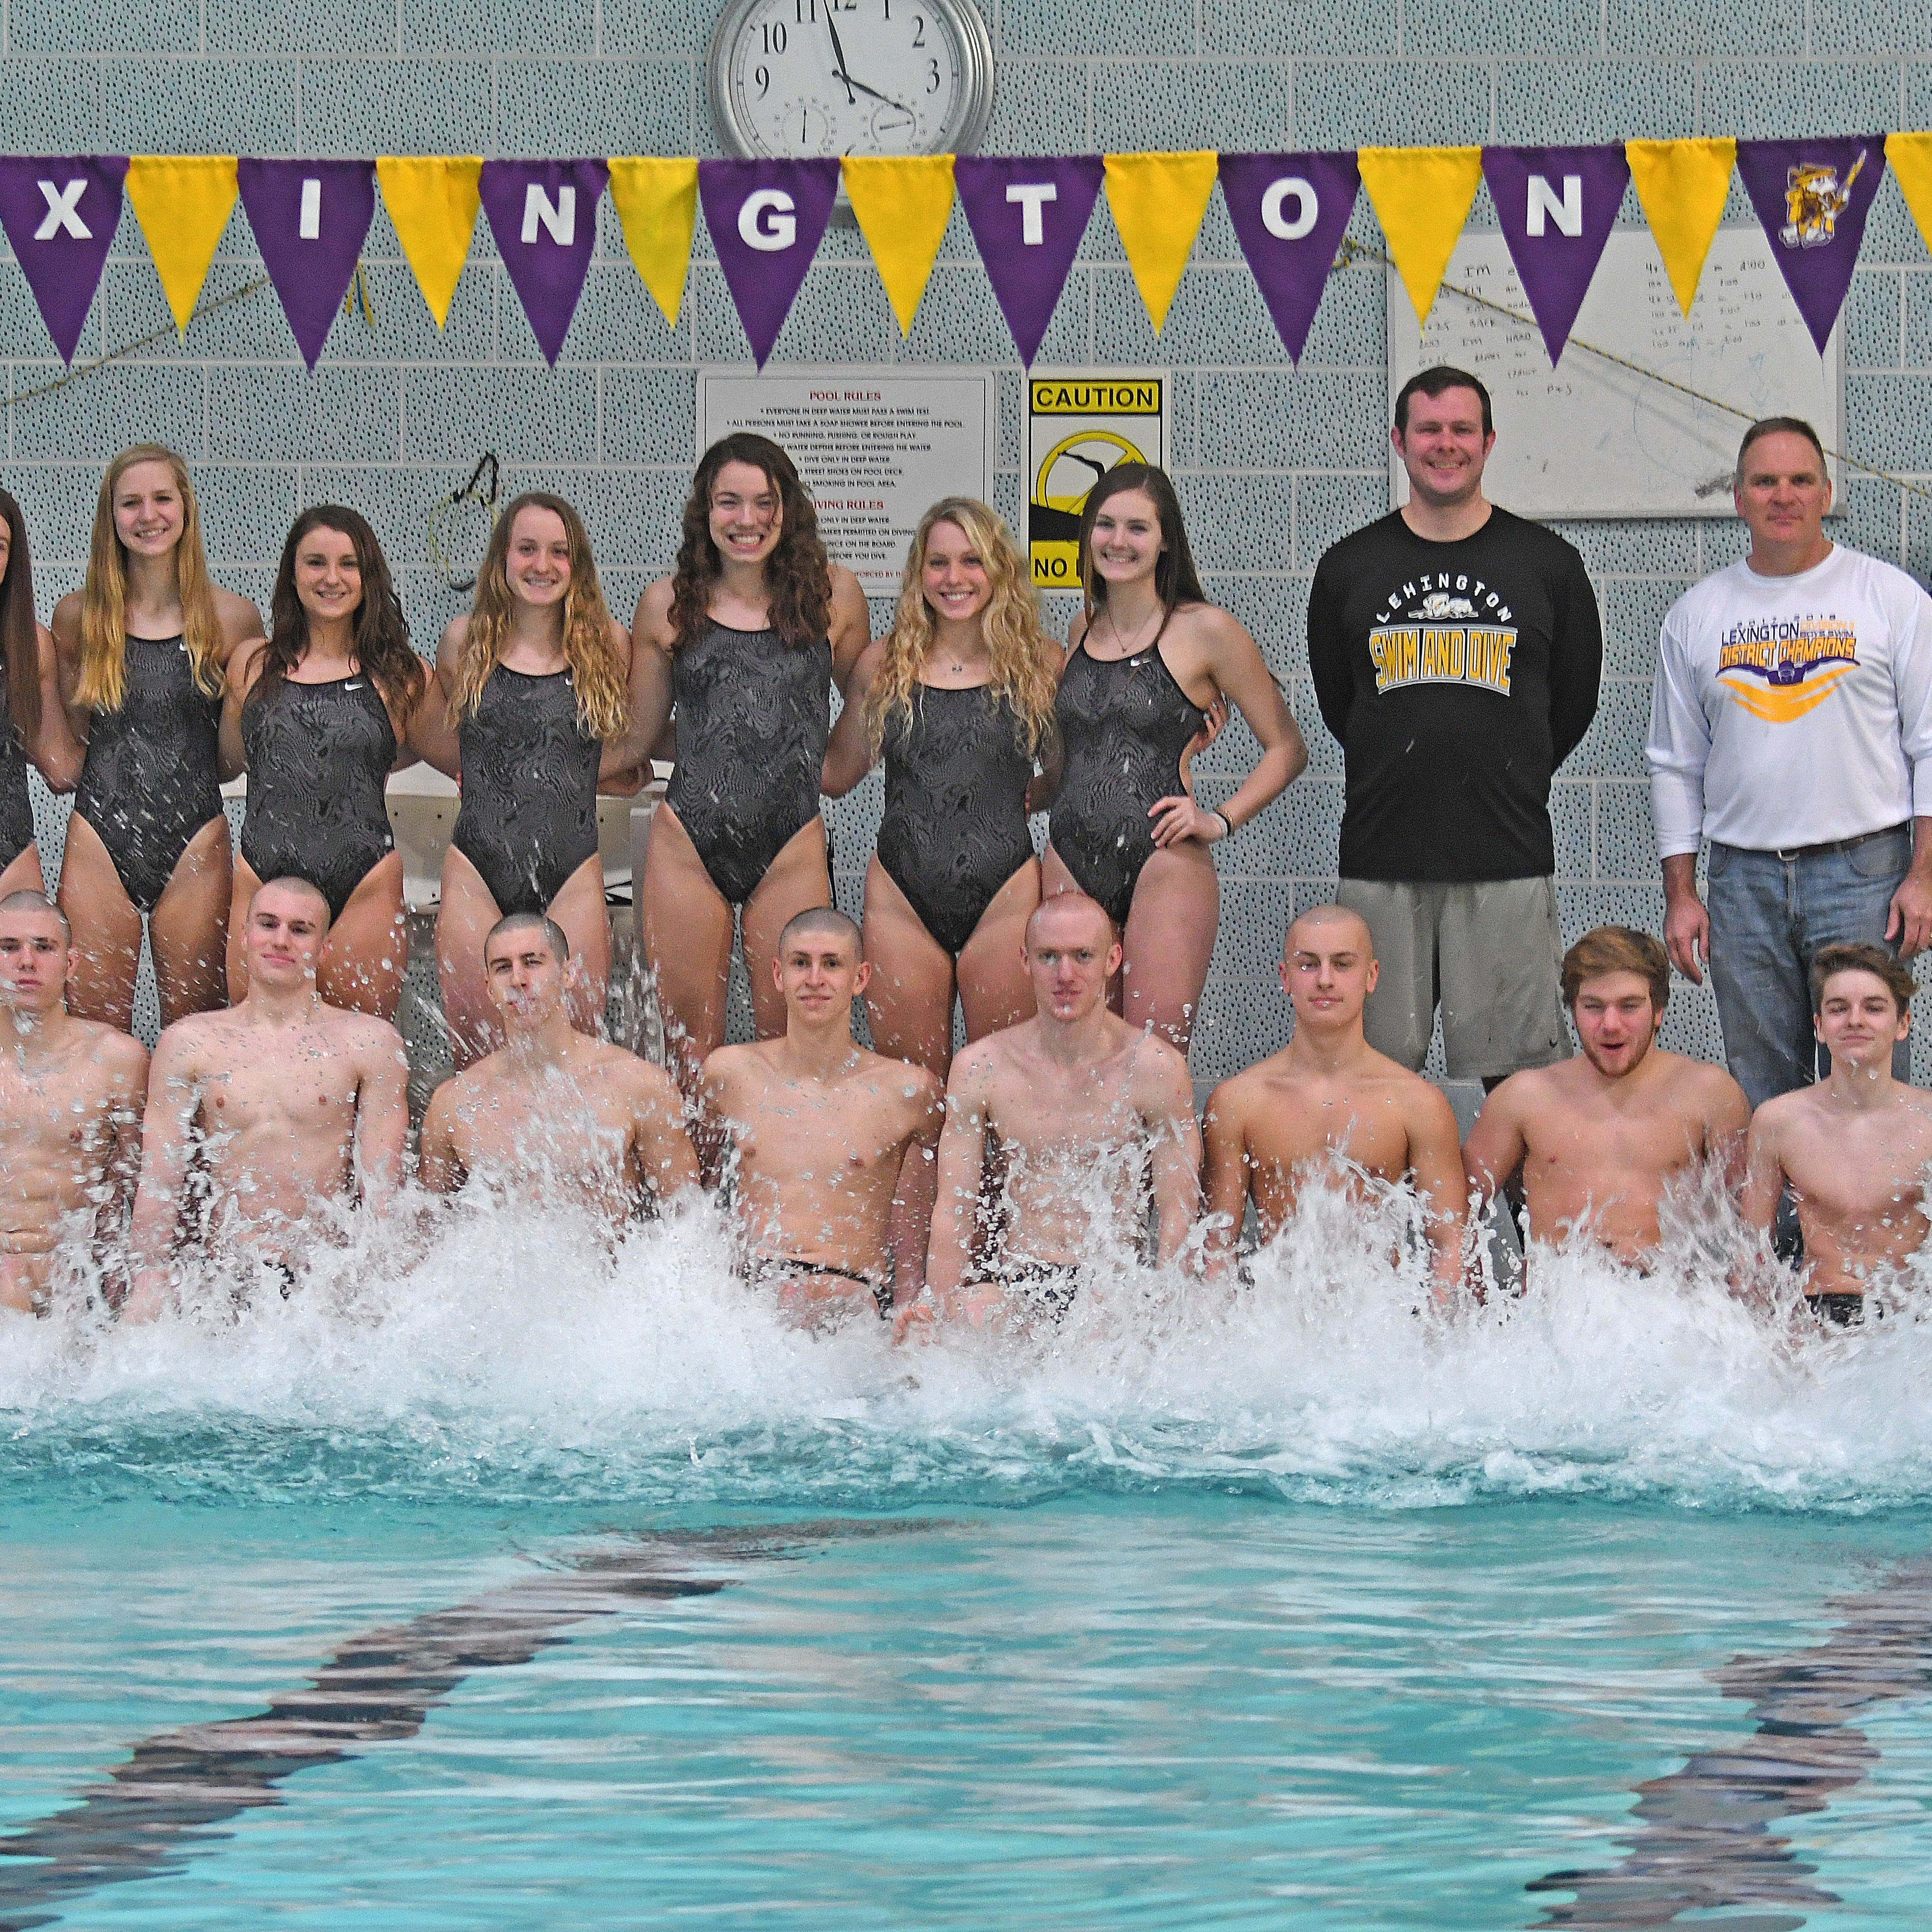 Topping itself: Lex swim team out to make history (again)